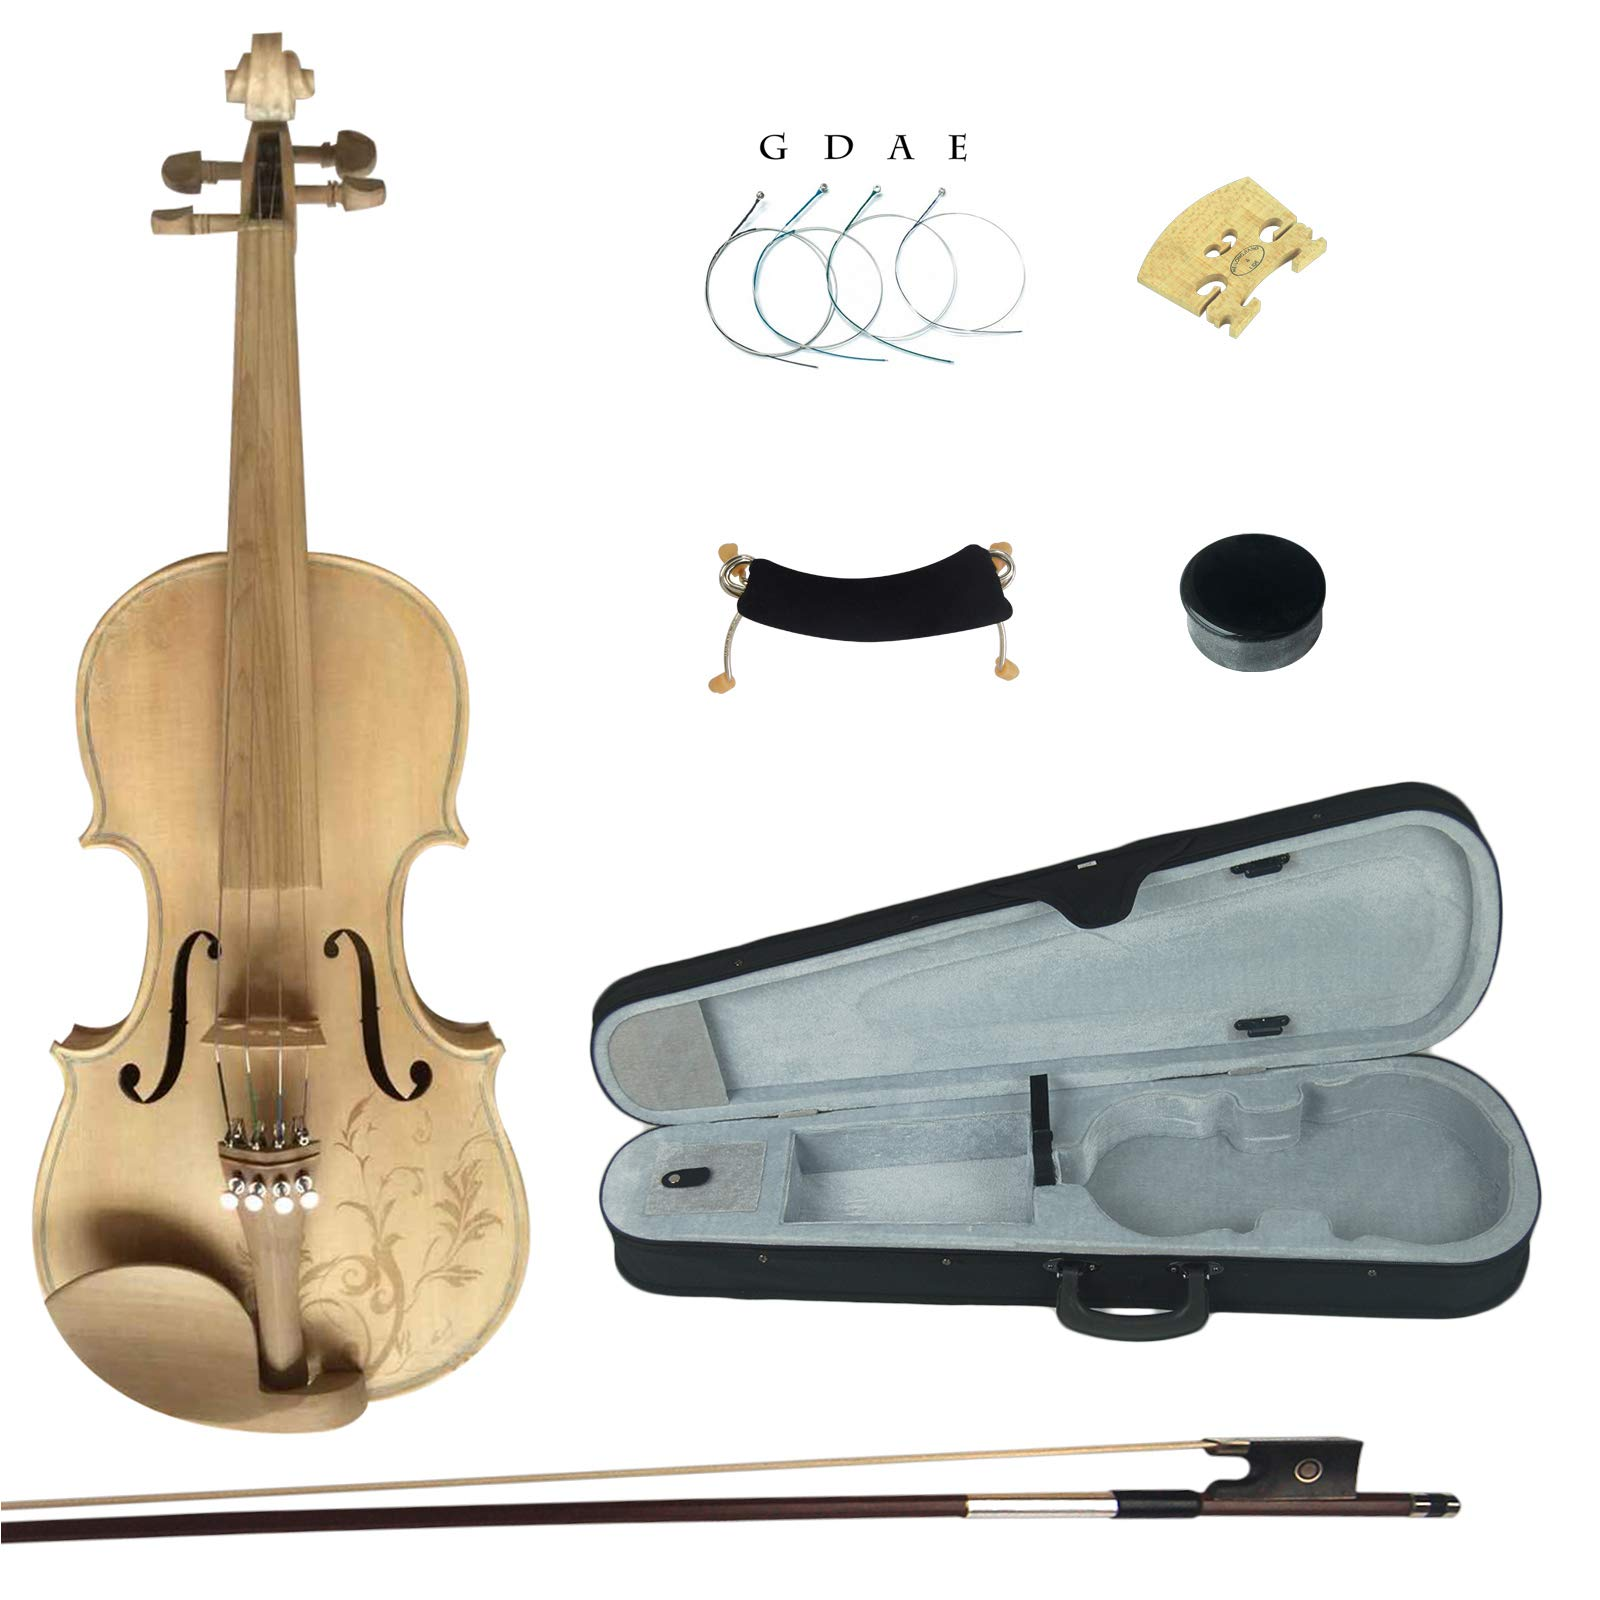 Kinglos 4/4 Flower Carved Ebony Fitted Solid Wood Unpainted Violin Kit with Case, Shoulder Rest, Bow, Rosin, Extra Bridge and Strings Full Size (MS007)